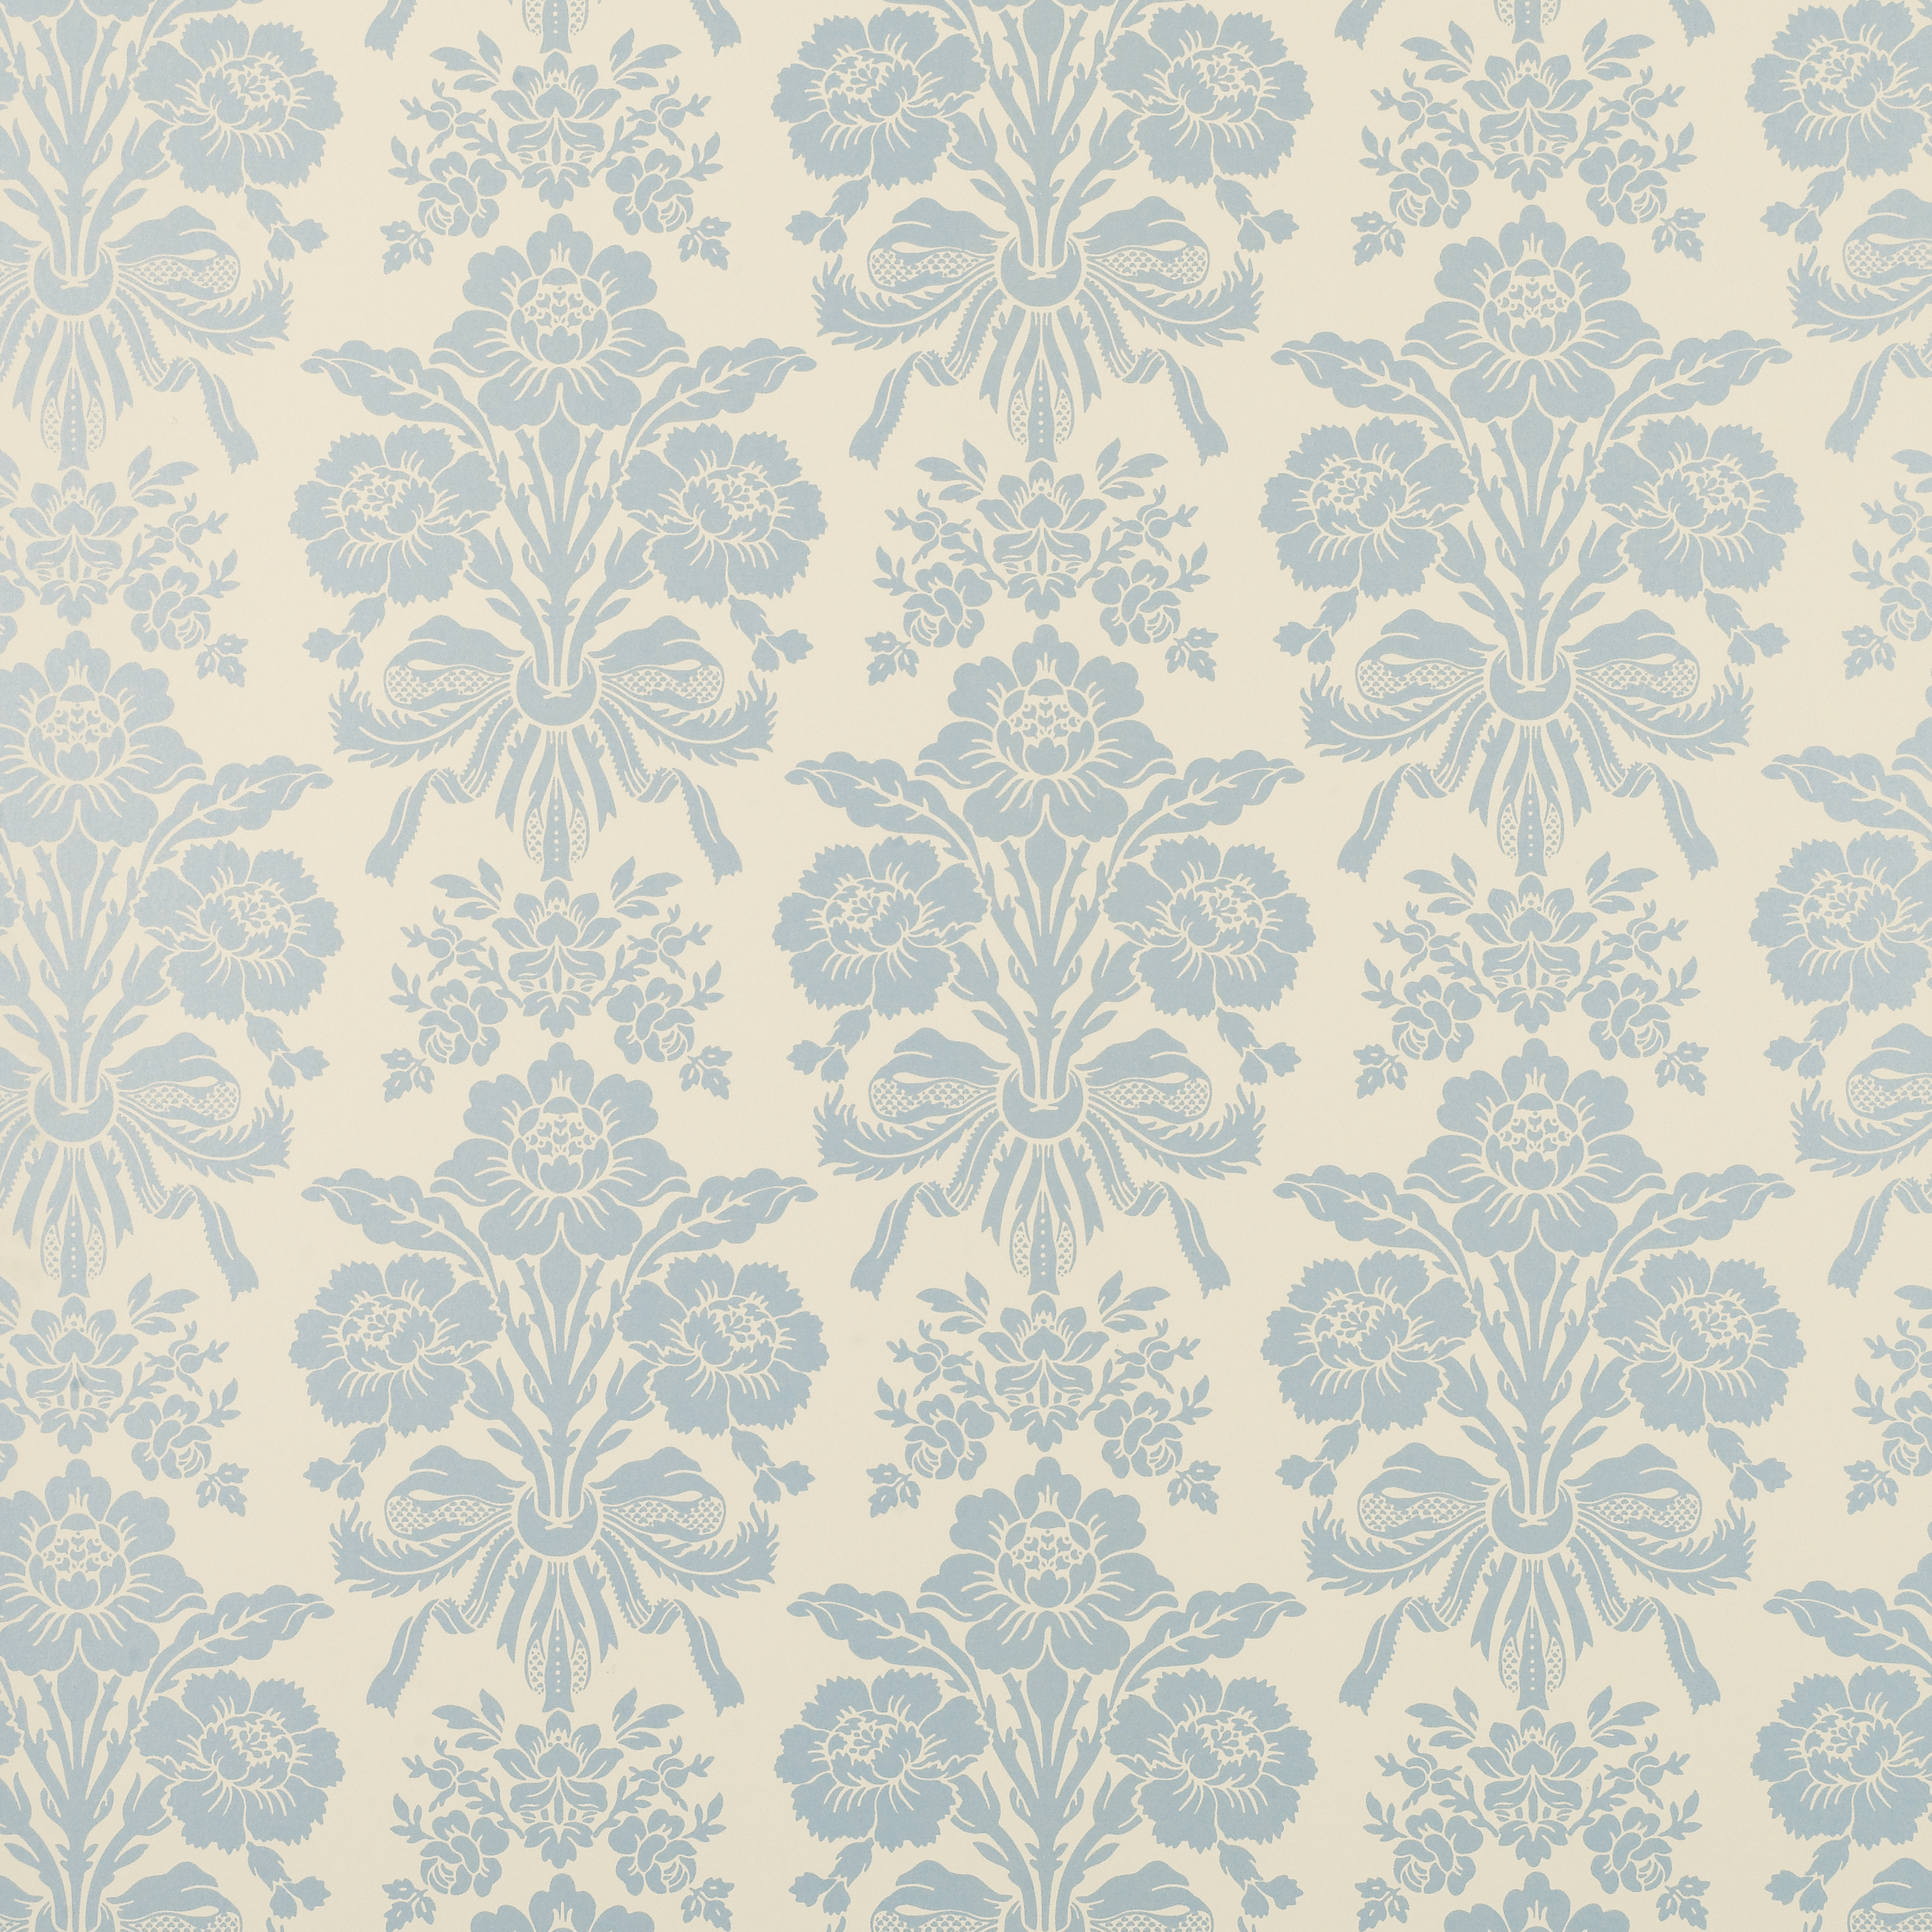 Tatton Duck Egg Damask Wallpaper 2500x2500